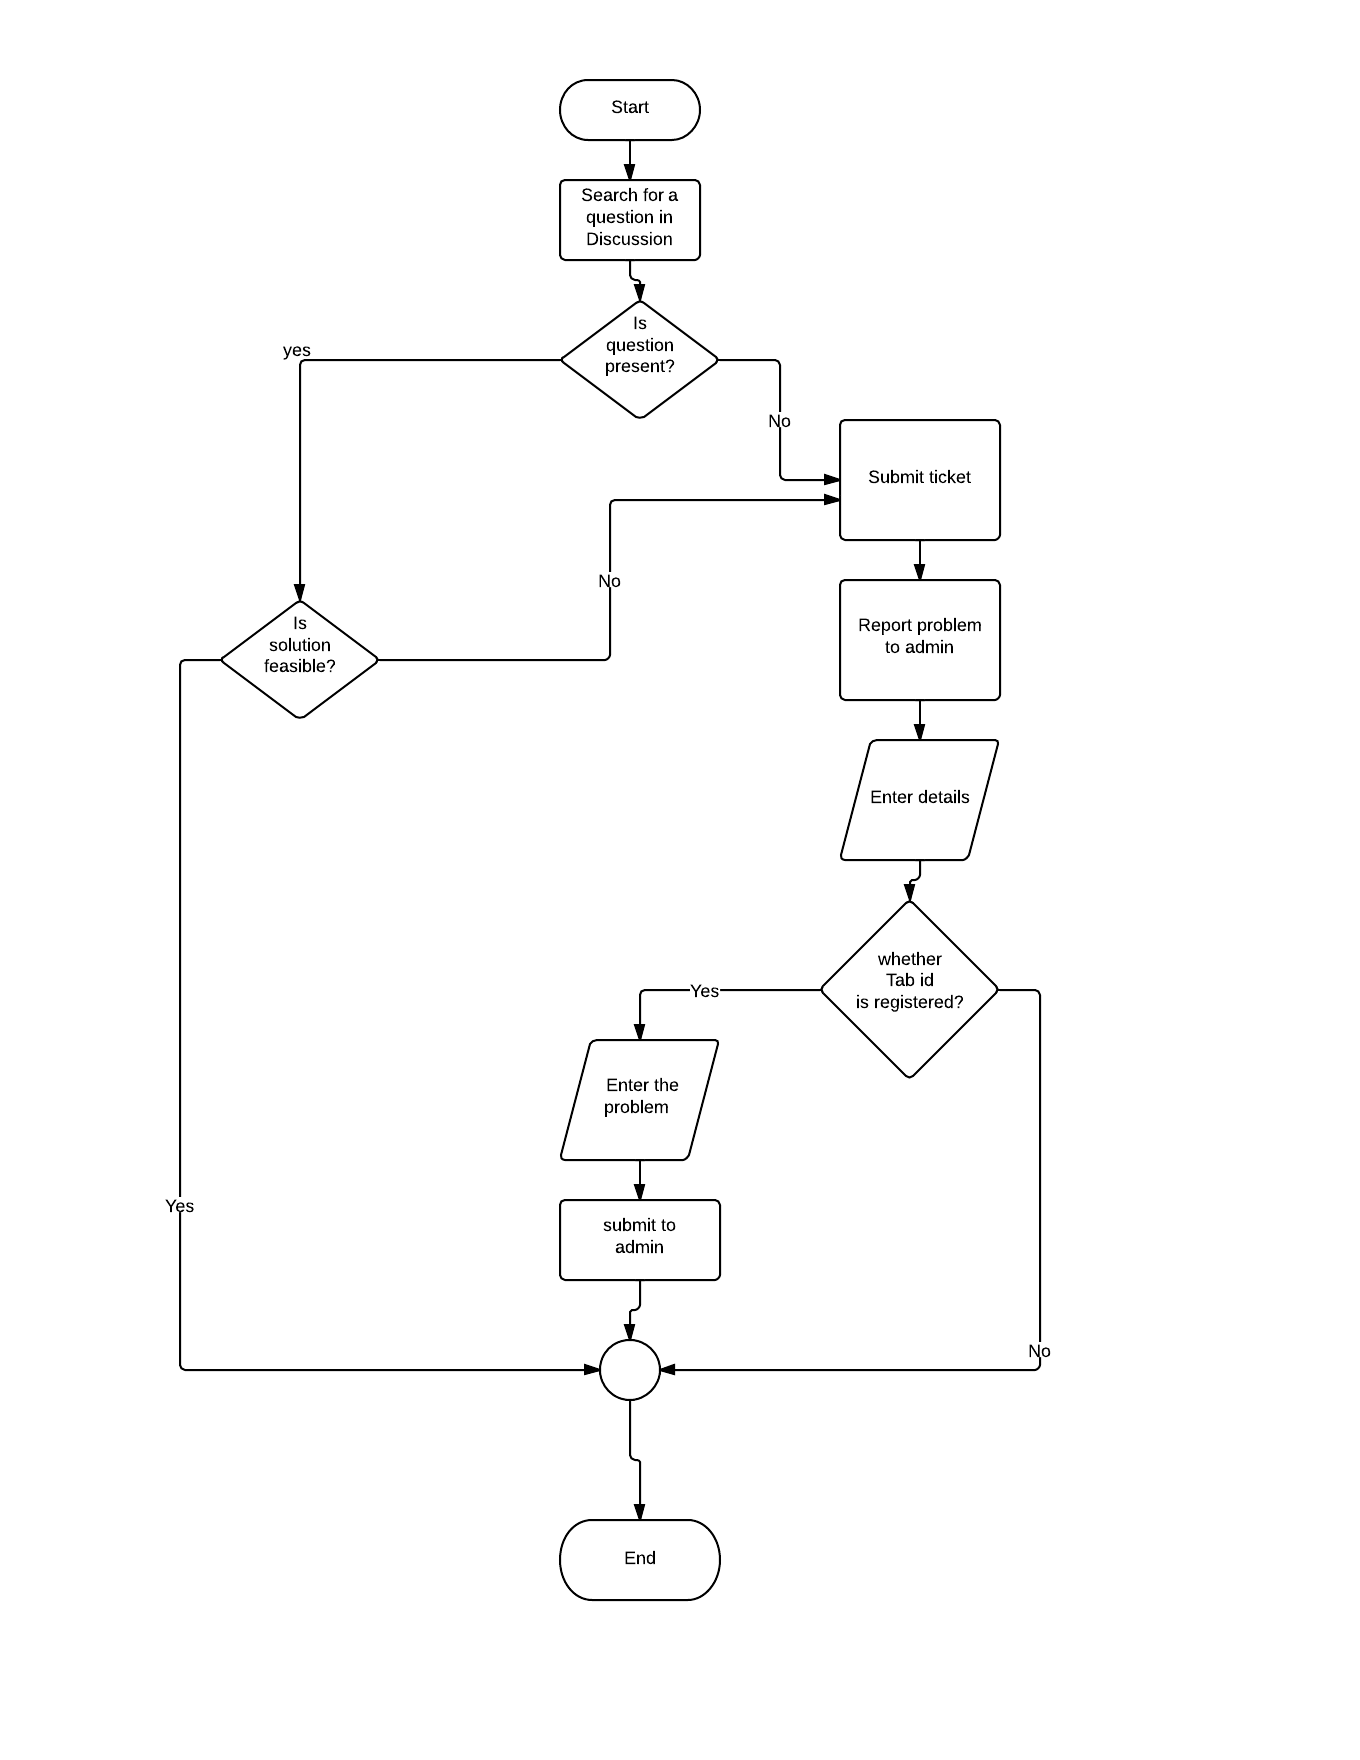 Diagrammatic descriptions srs for aakashtechsupport 101 flow chart for reporting a problem nvjuhfo Images